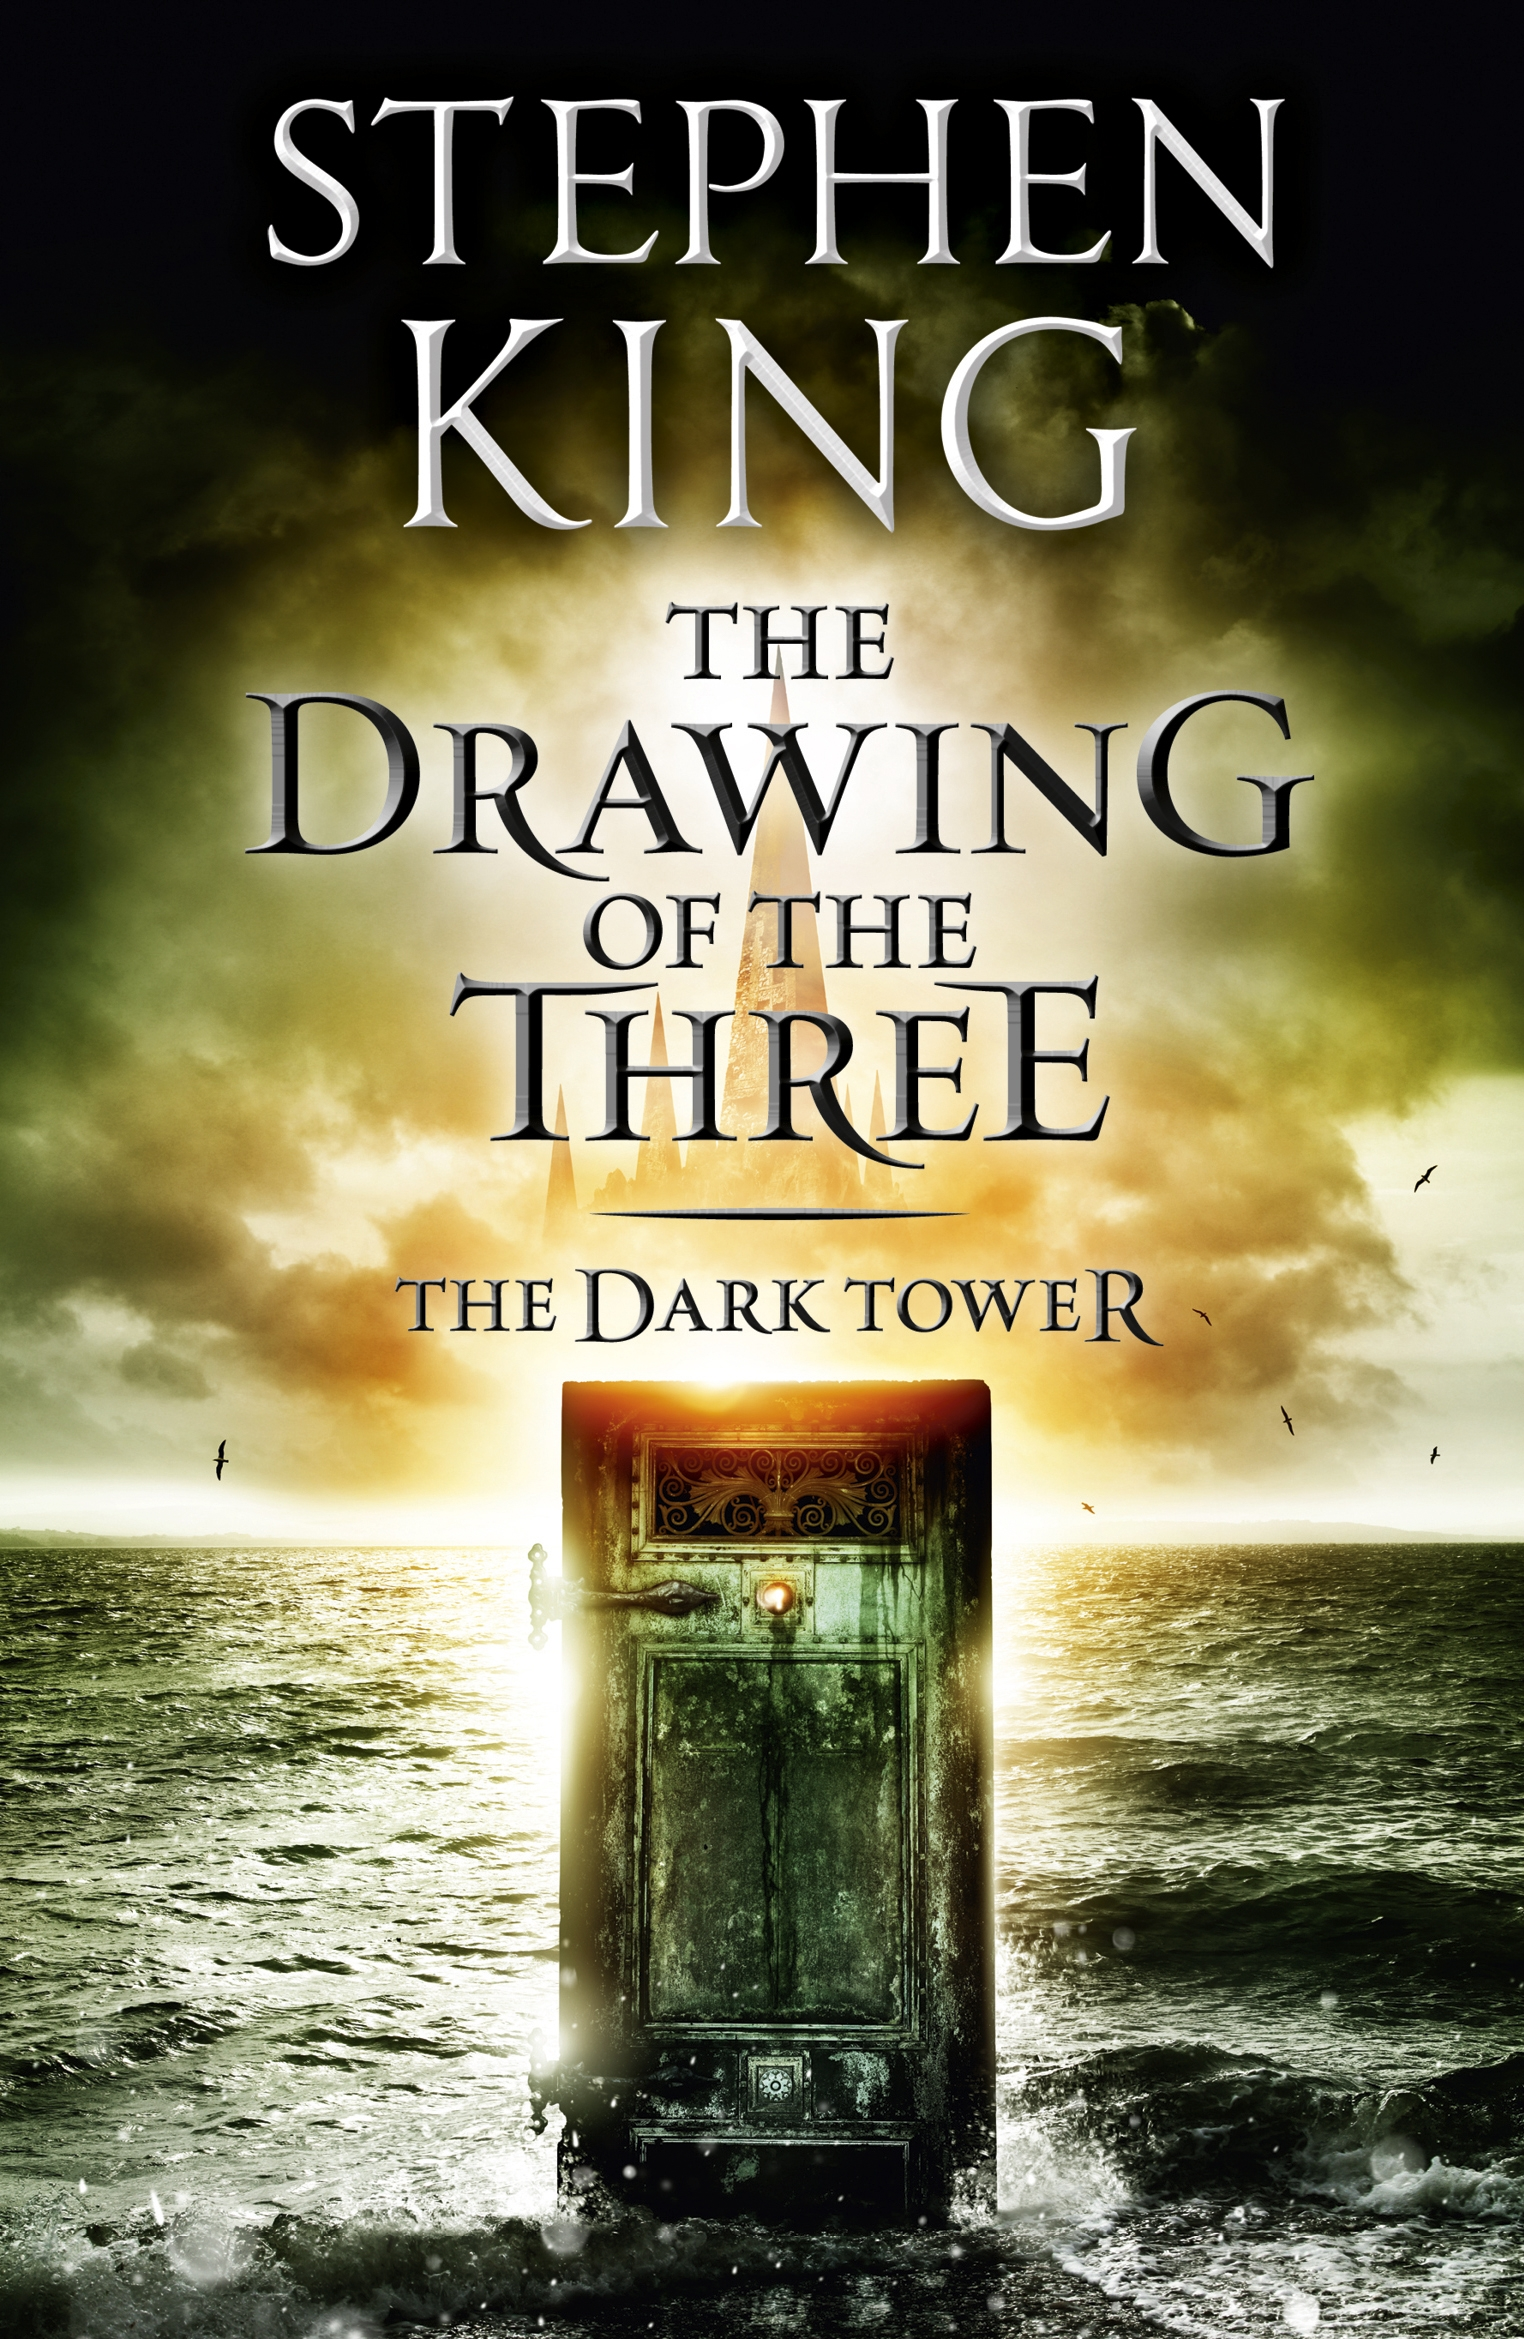 an analysis of the dark tower series by stephen king Our constant reader (and big stephen king fan) author suzanne johnson reads through the dark tower series for the first time, offering up insight and analysis every monday.